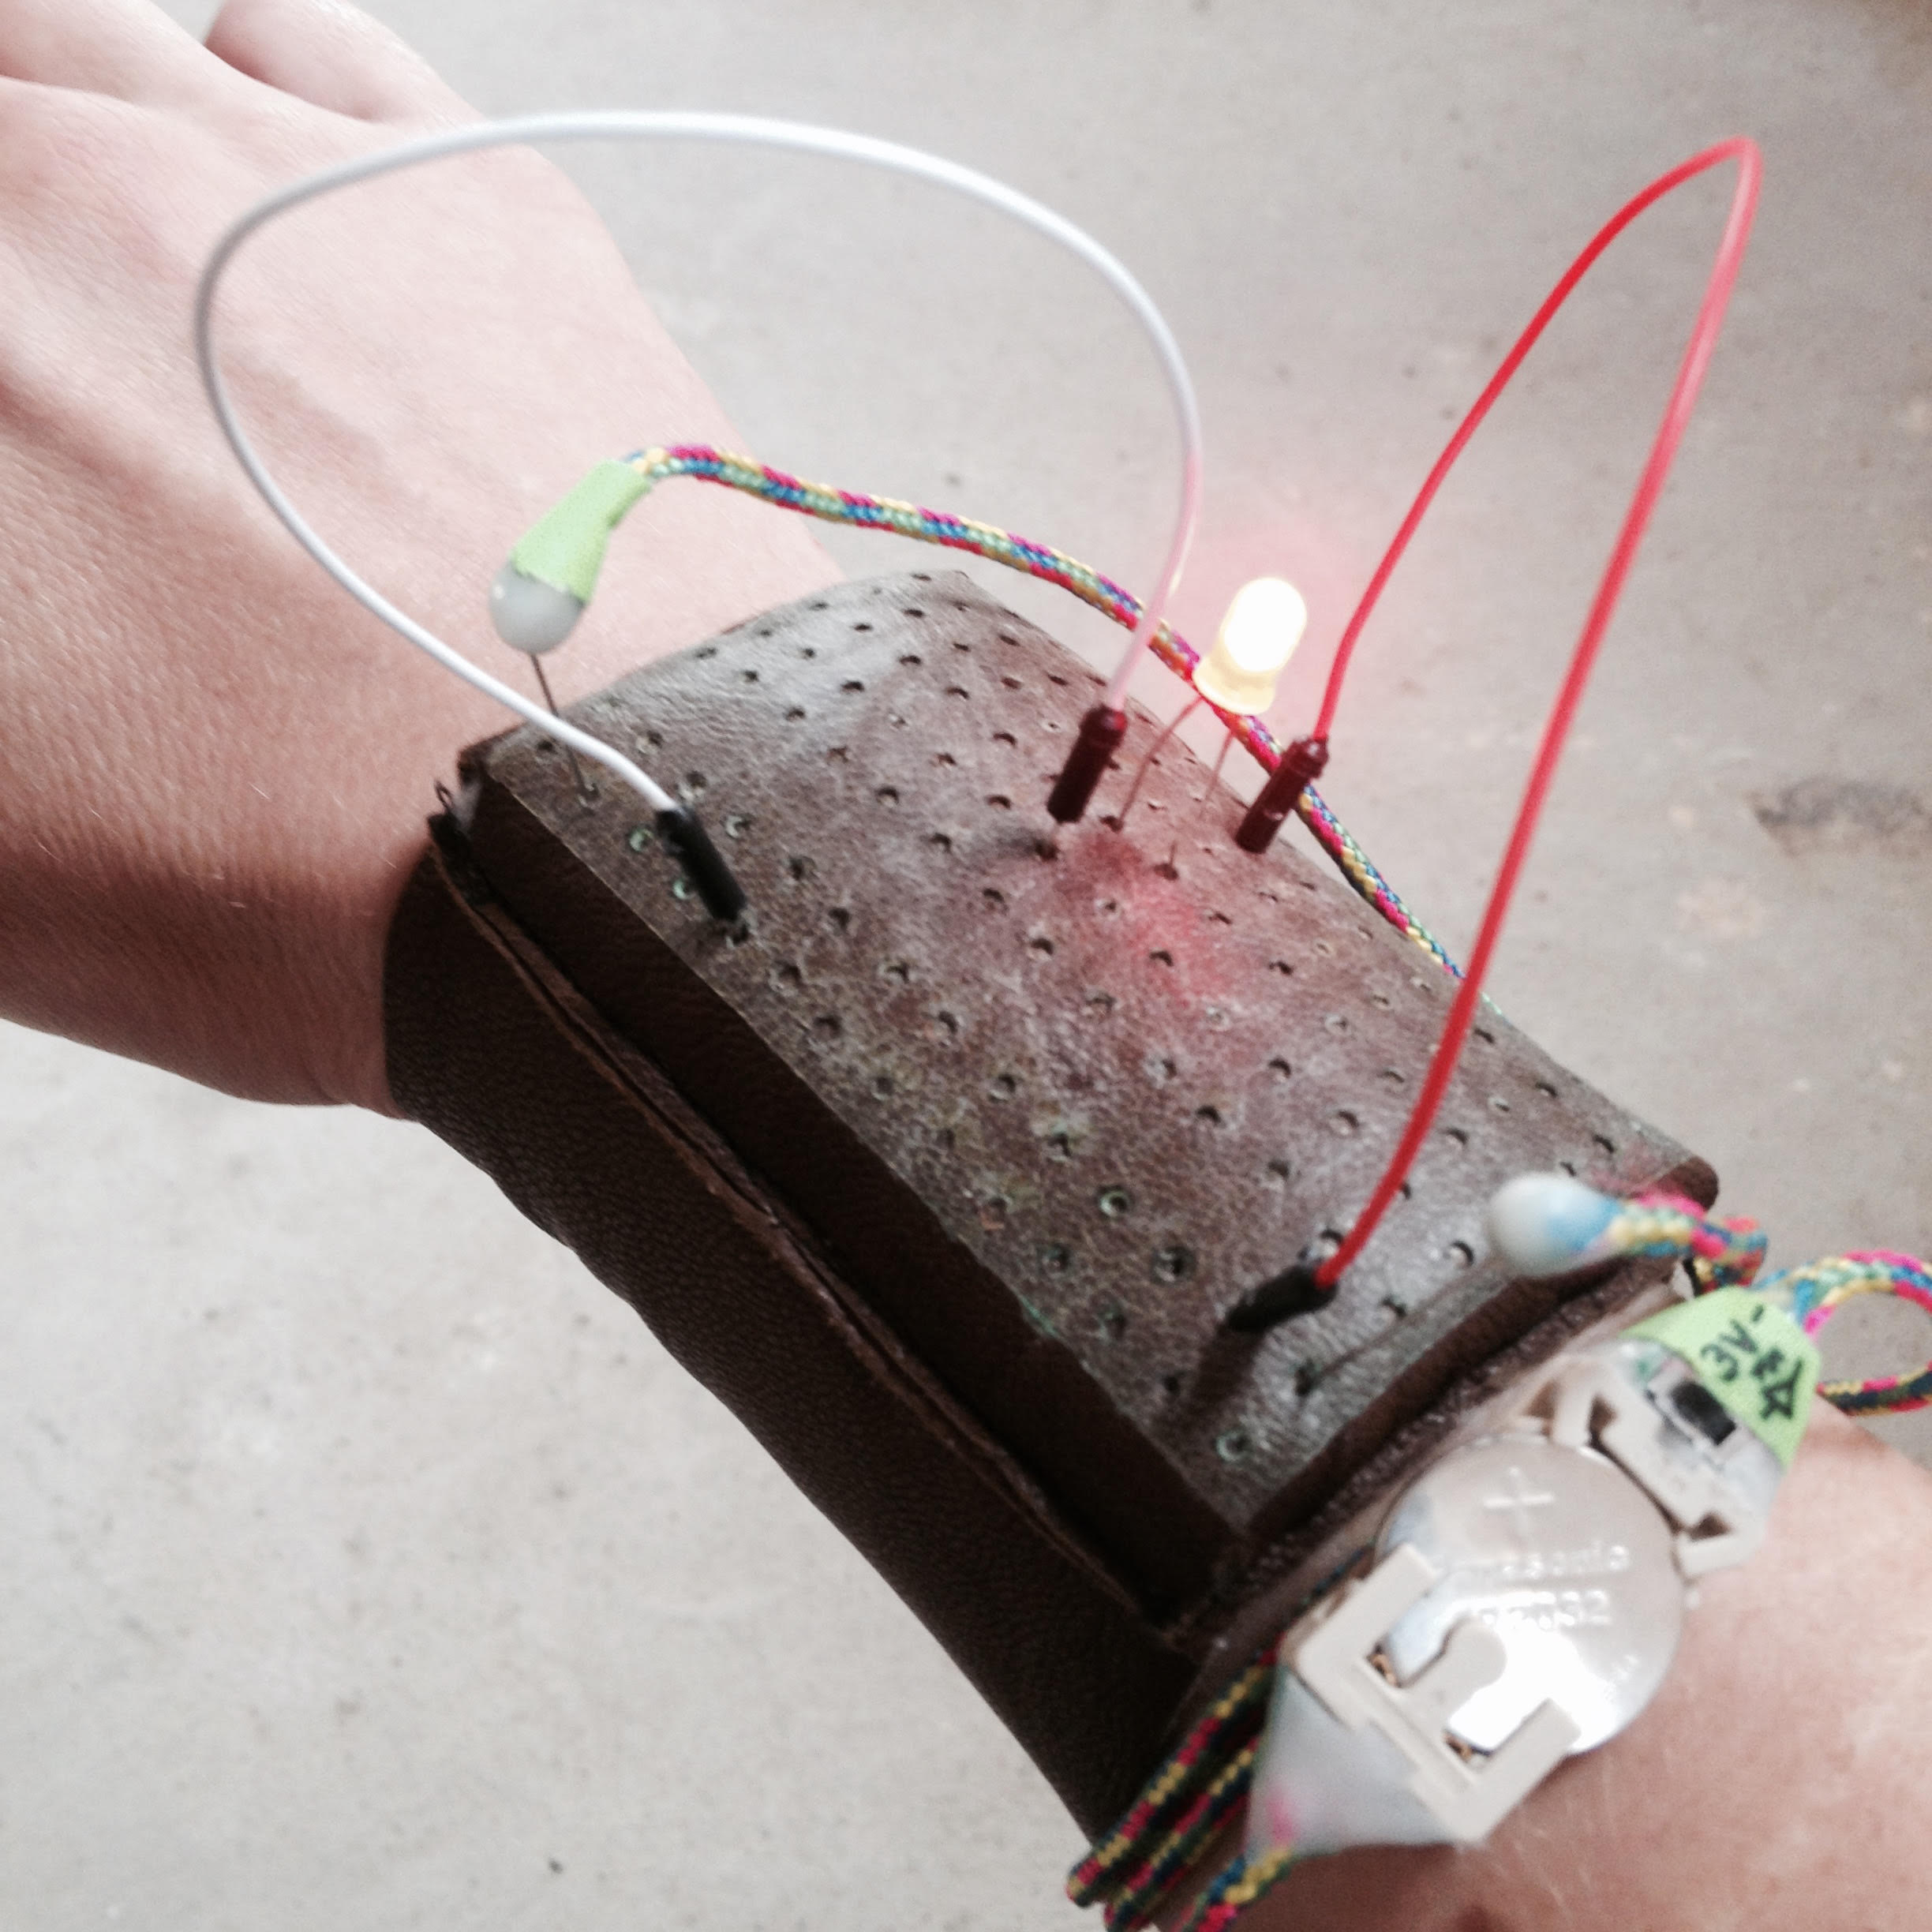 first circuit test using Irene's portable battery pack/continuity tester